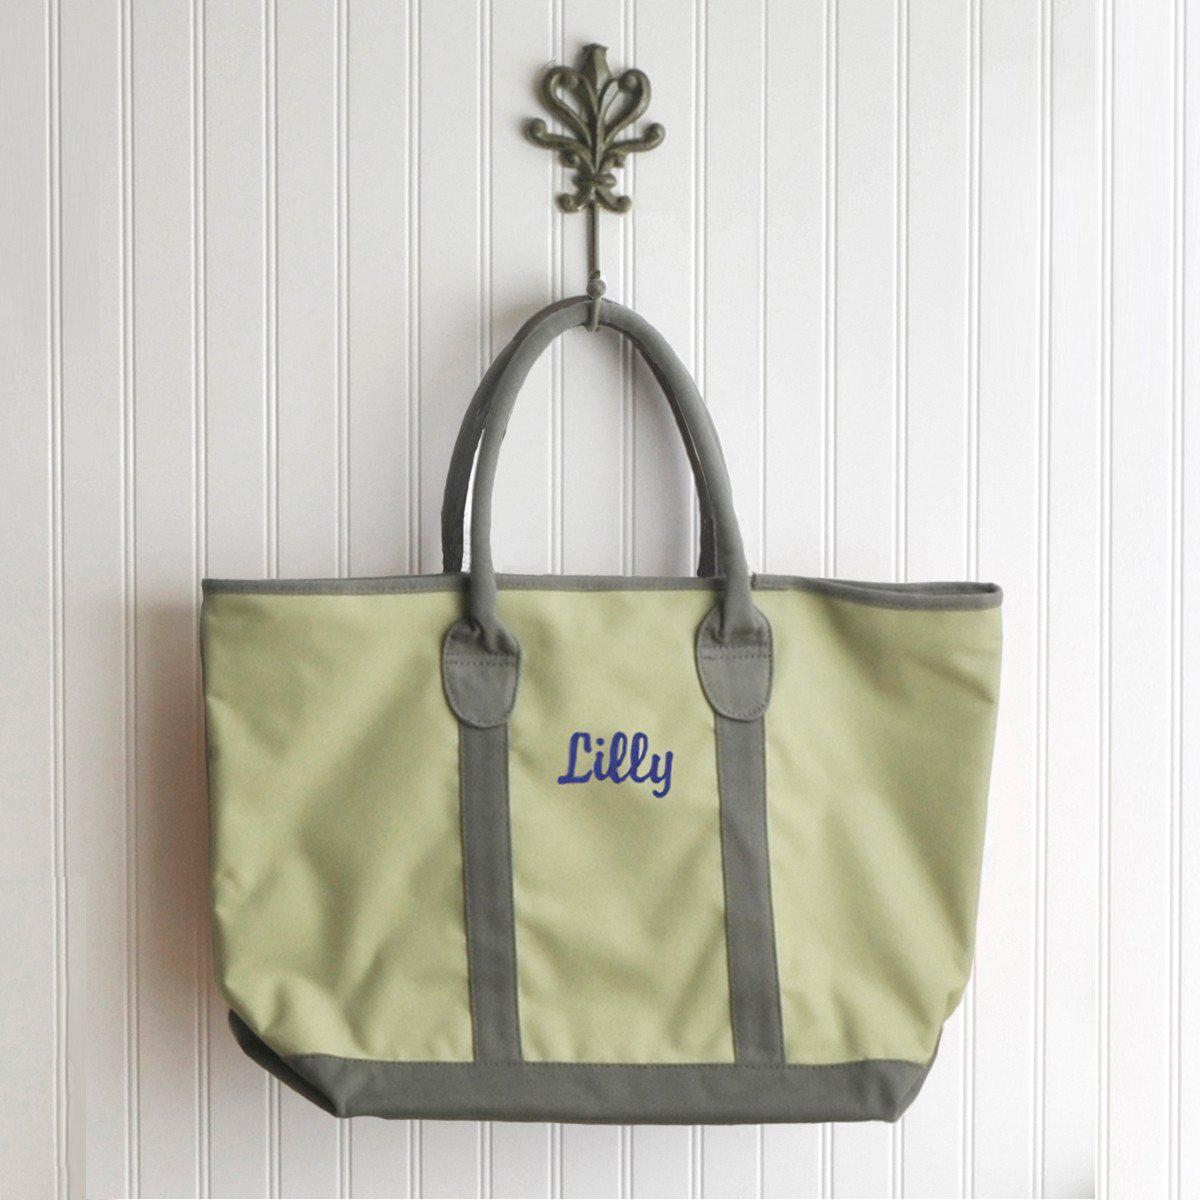 Personalized Tote Bags Near Me